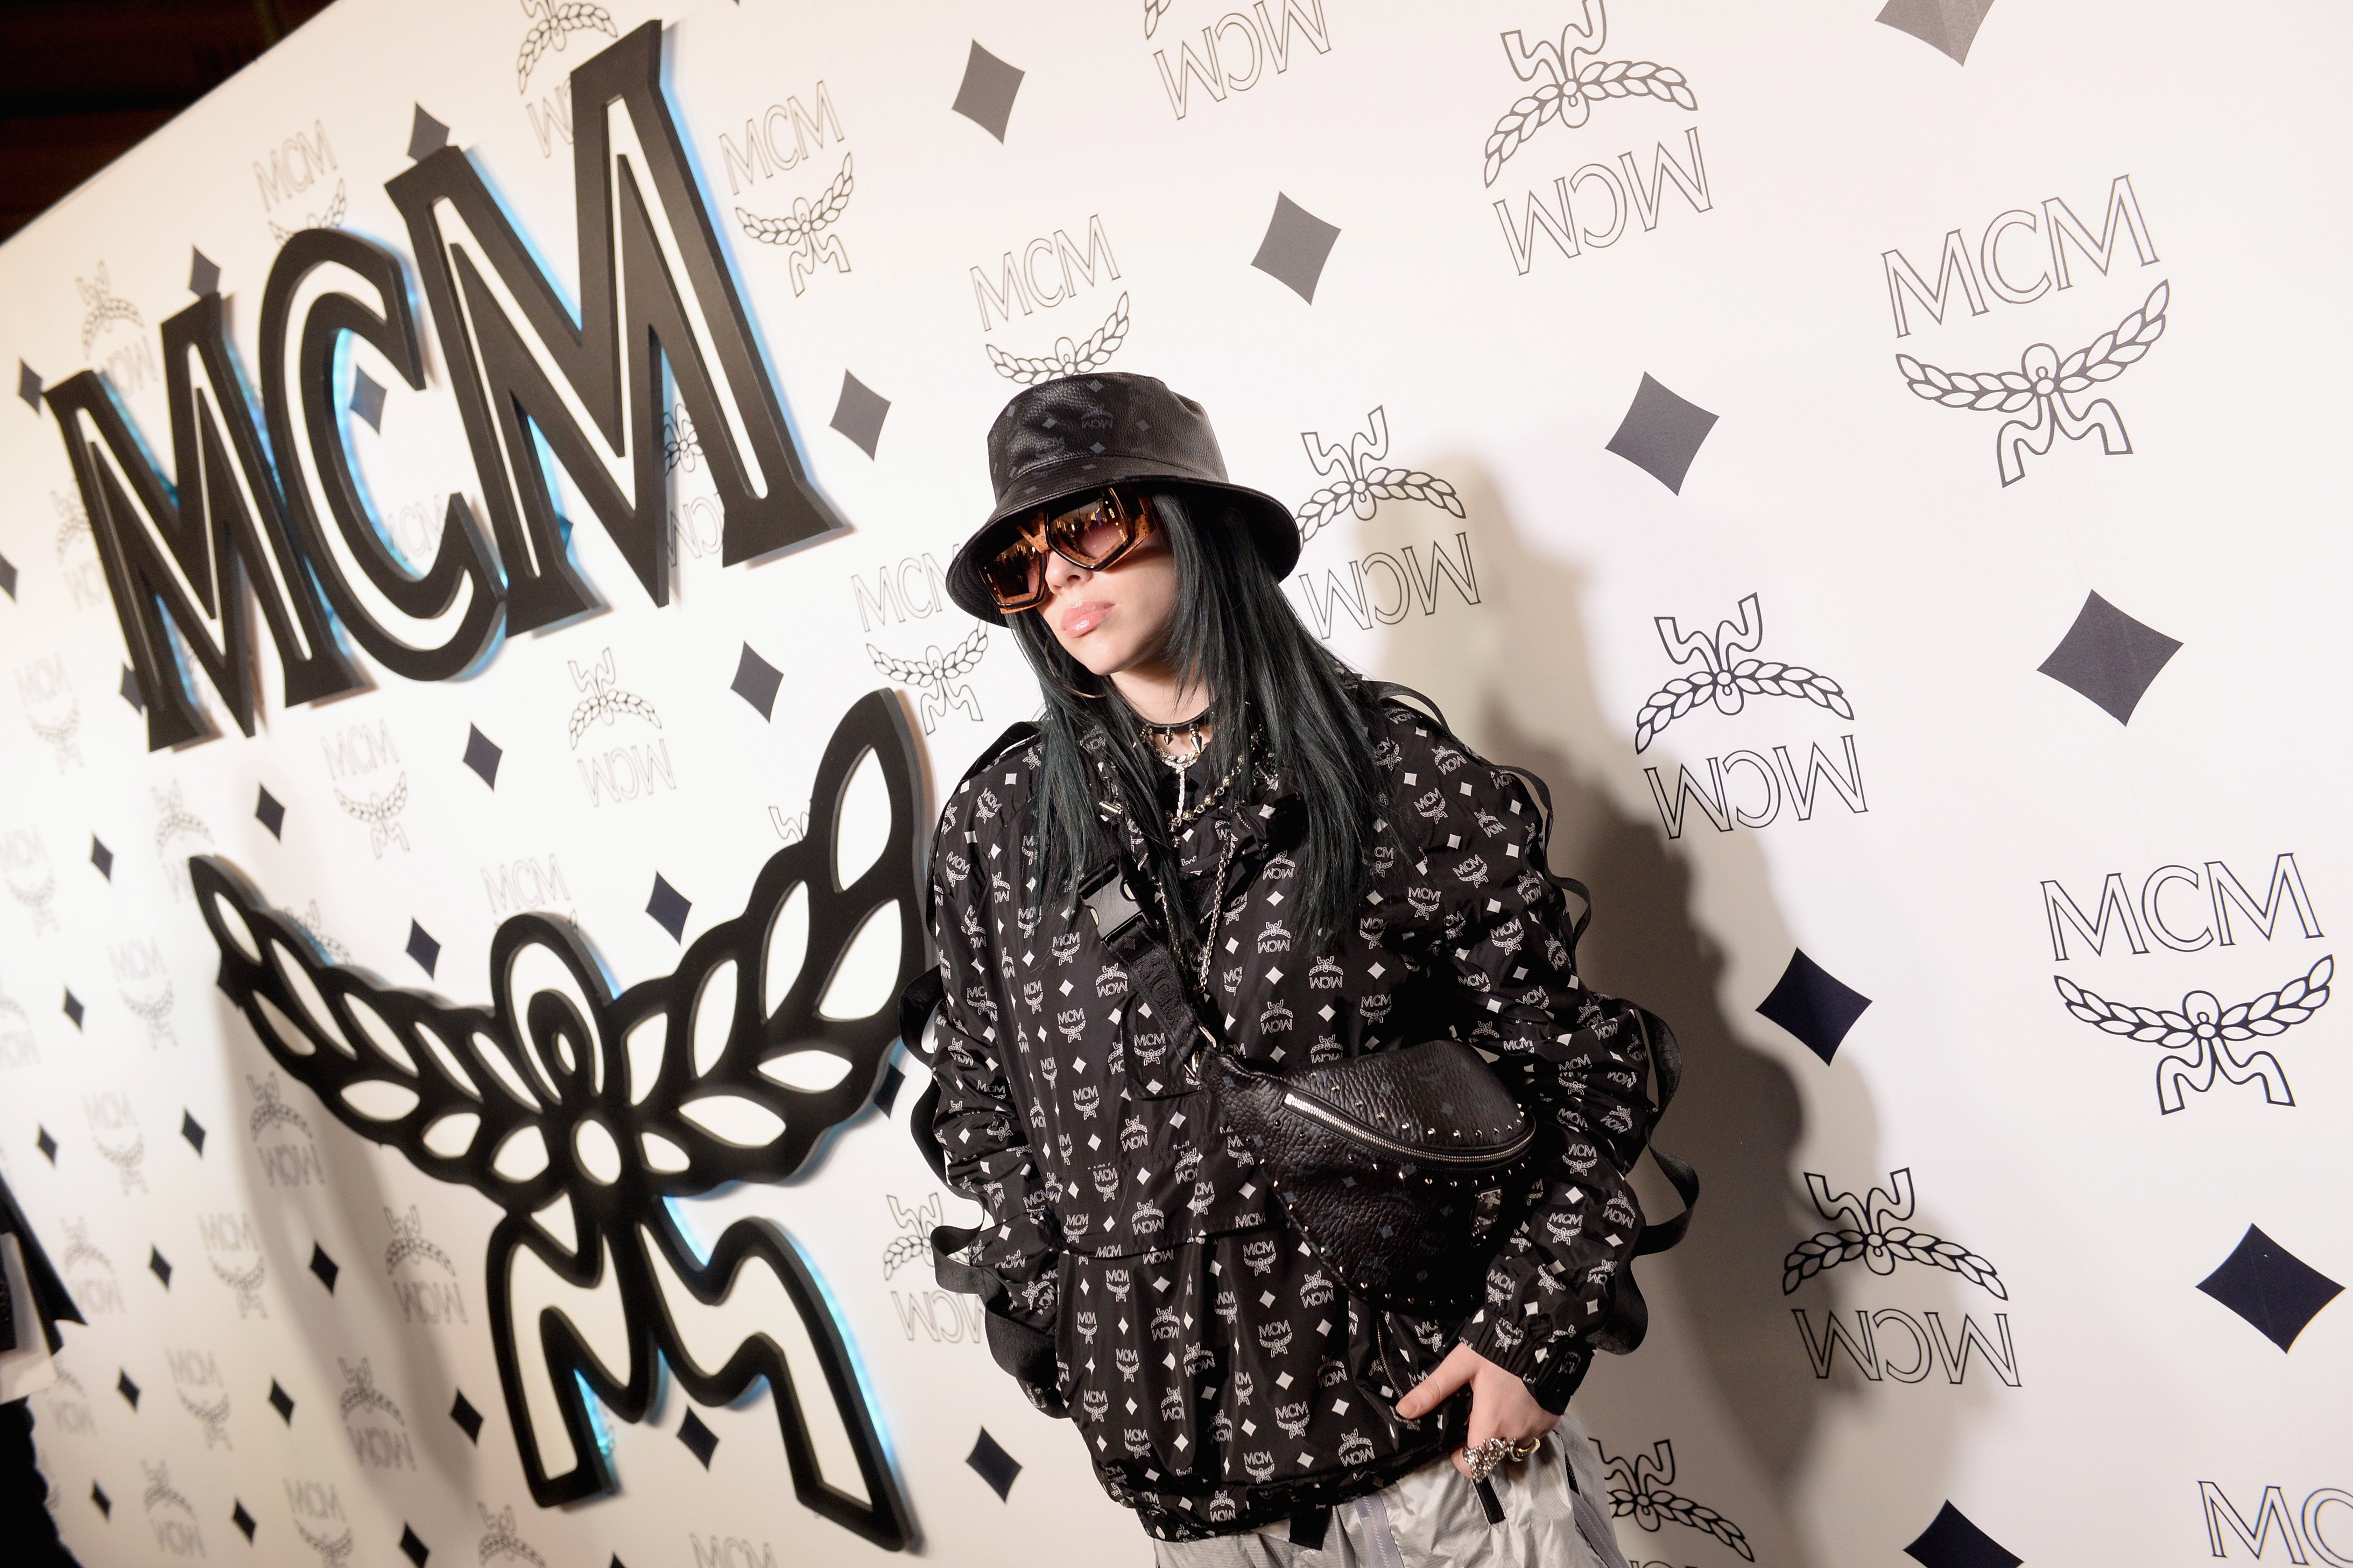 Billie Eilish attends the MCM Rodeo Drive Store Grand Opening Event at MCM Rodeo Drive on March 14, 2019 in Beverly Hills, California | Photo: GettyImages